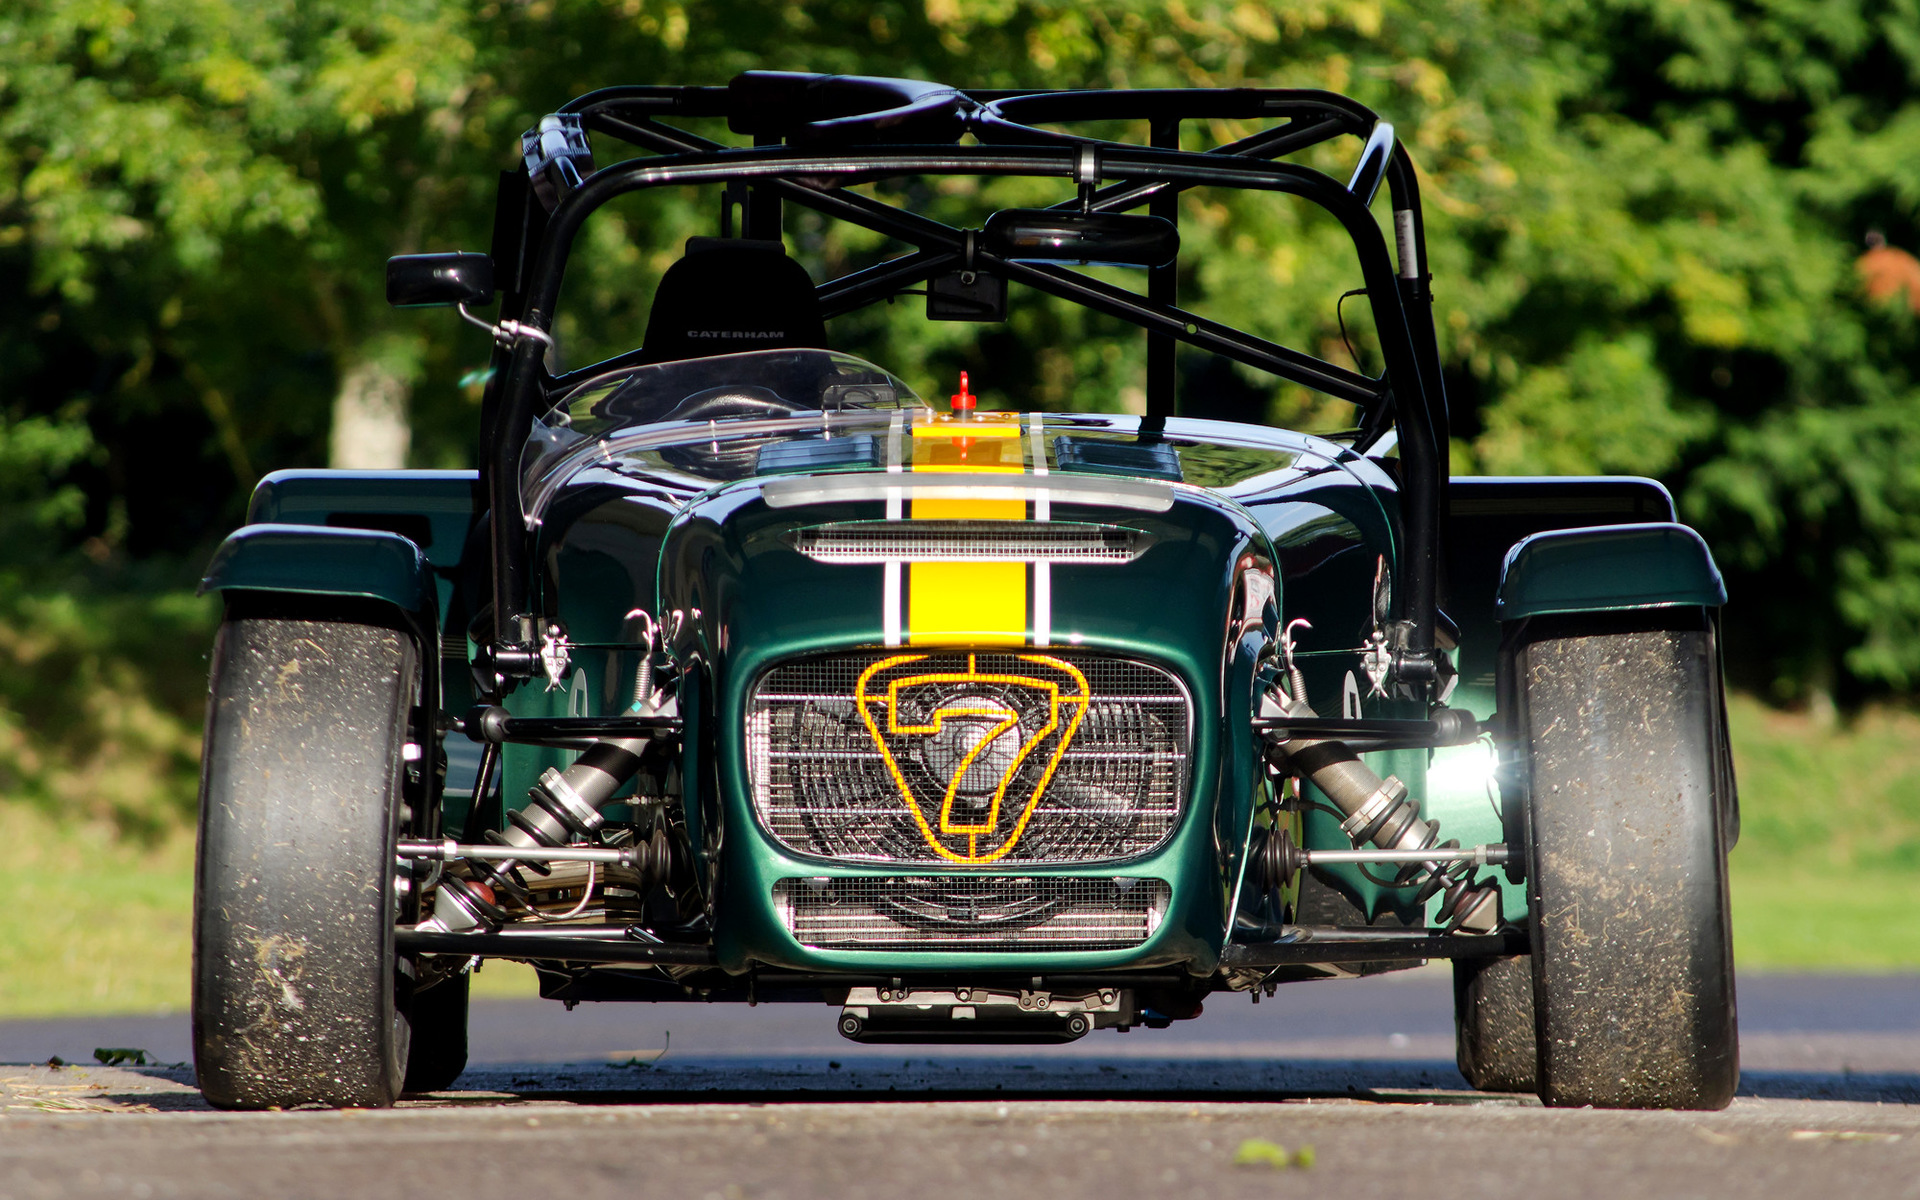 Caterham Seven Superlight R600 (2012) Wallpapers and HD Images